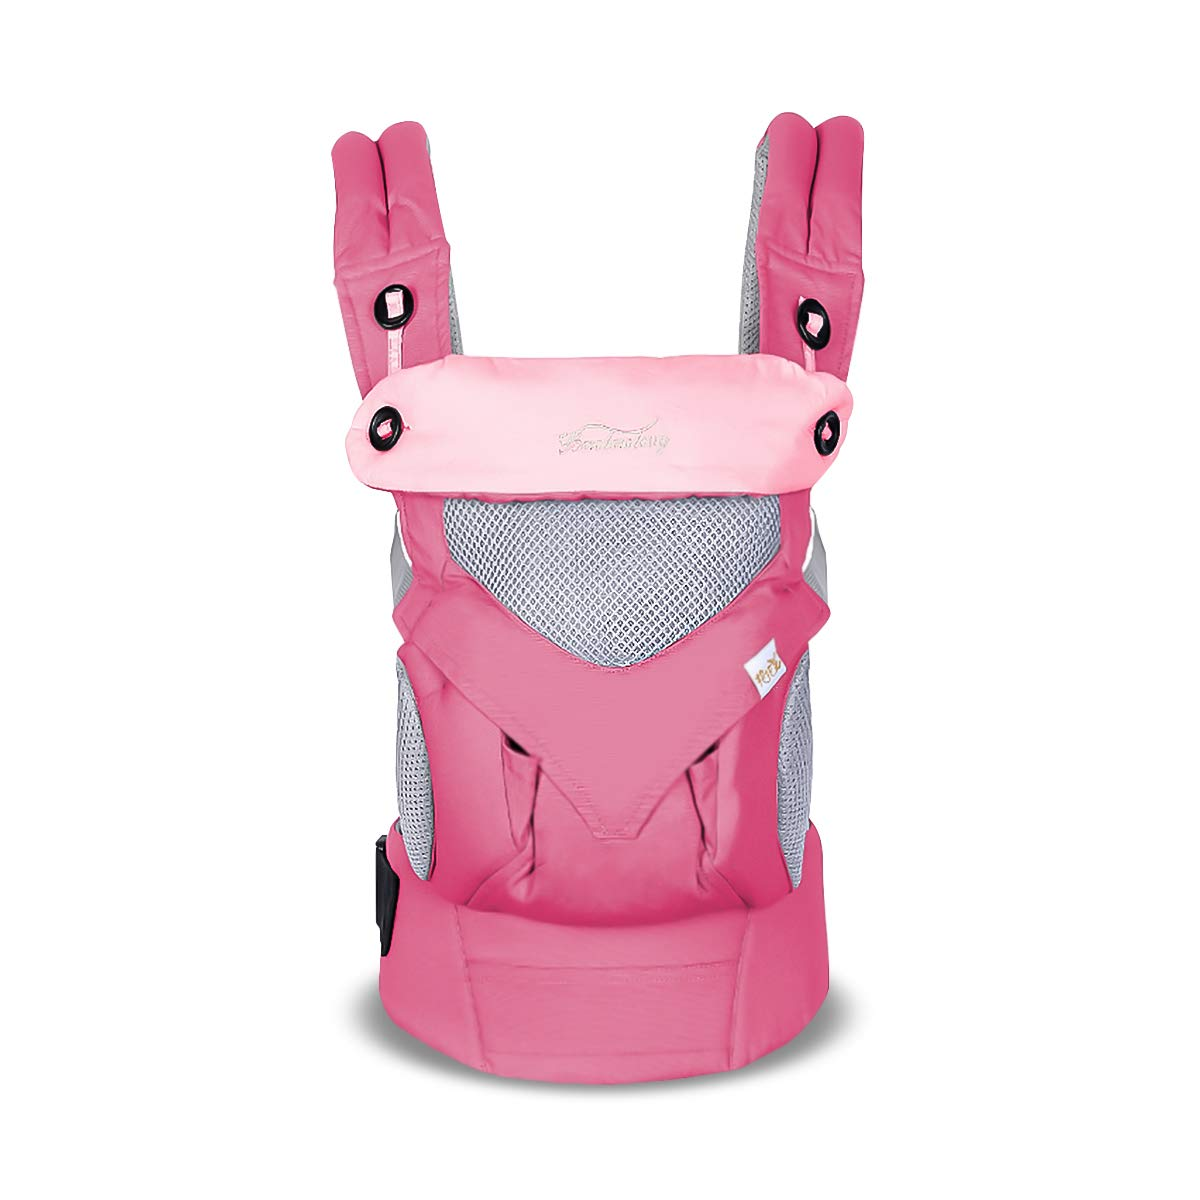 ,Maximum Load 20kg,Front Facing Baby Carrier,Suitable for Summer SONARIN 4 in 1 Breathable Baby Carrier,3D Breathable mesh,Sunscreen Hood,Ergonomic,for Newborn to Toddler Pink 3-48 Months